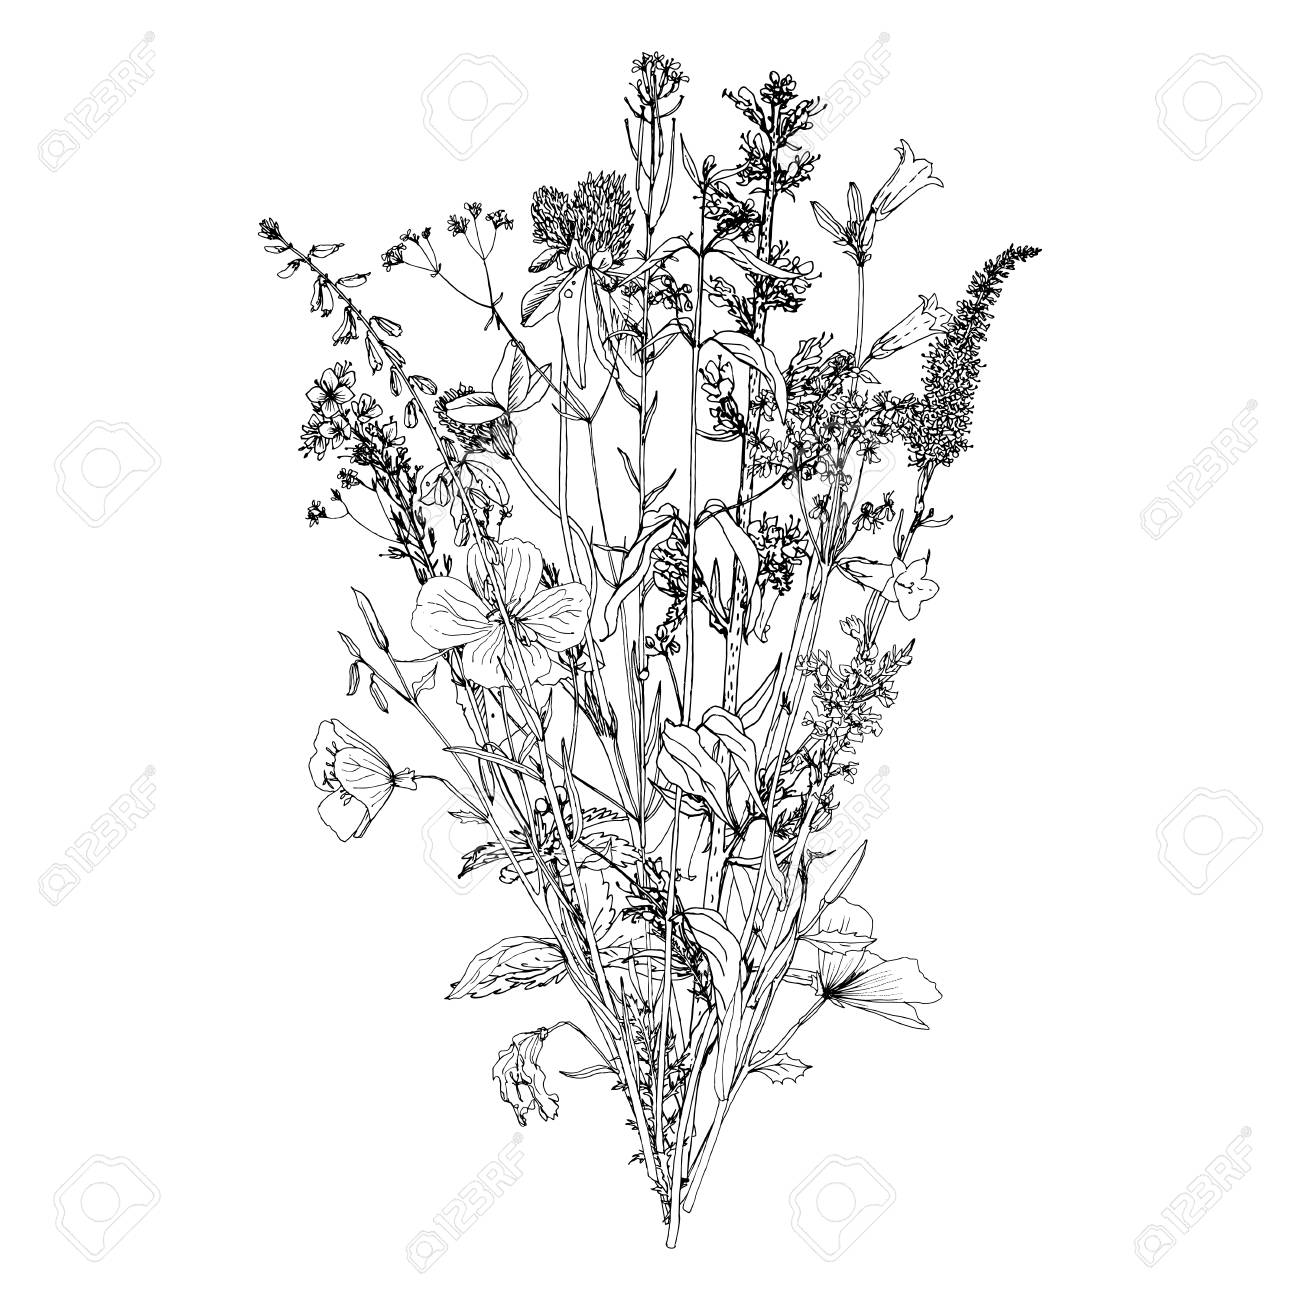 Vector vector bouquet with drawing wild plants herbs and flowers monochrome botanical illustration in vintage style isolated floral element